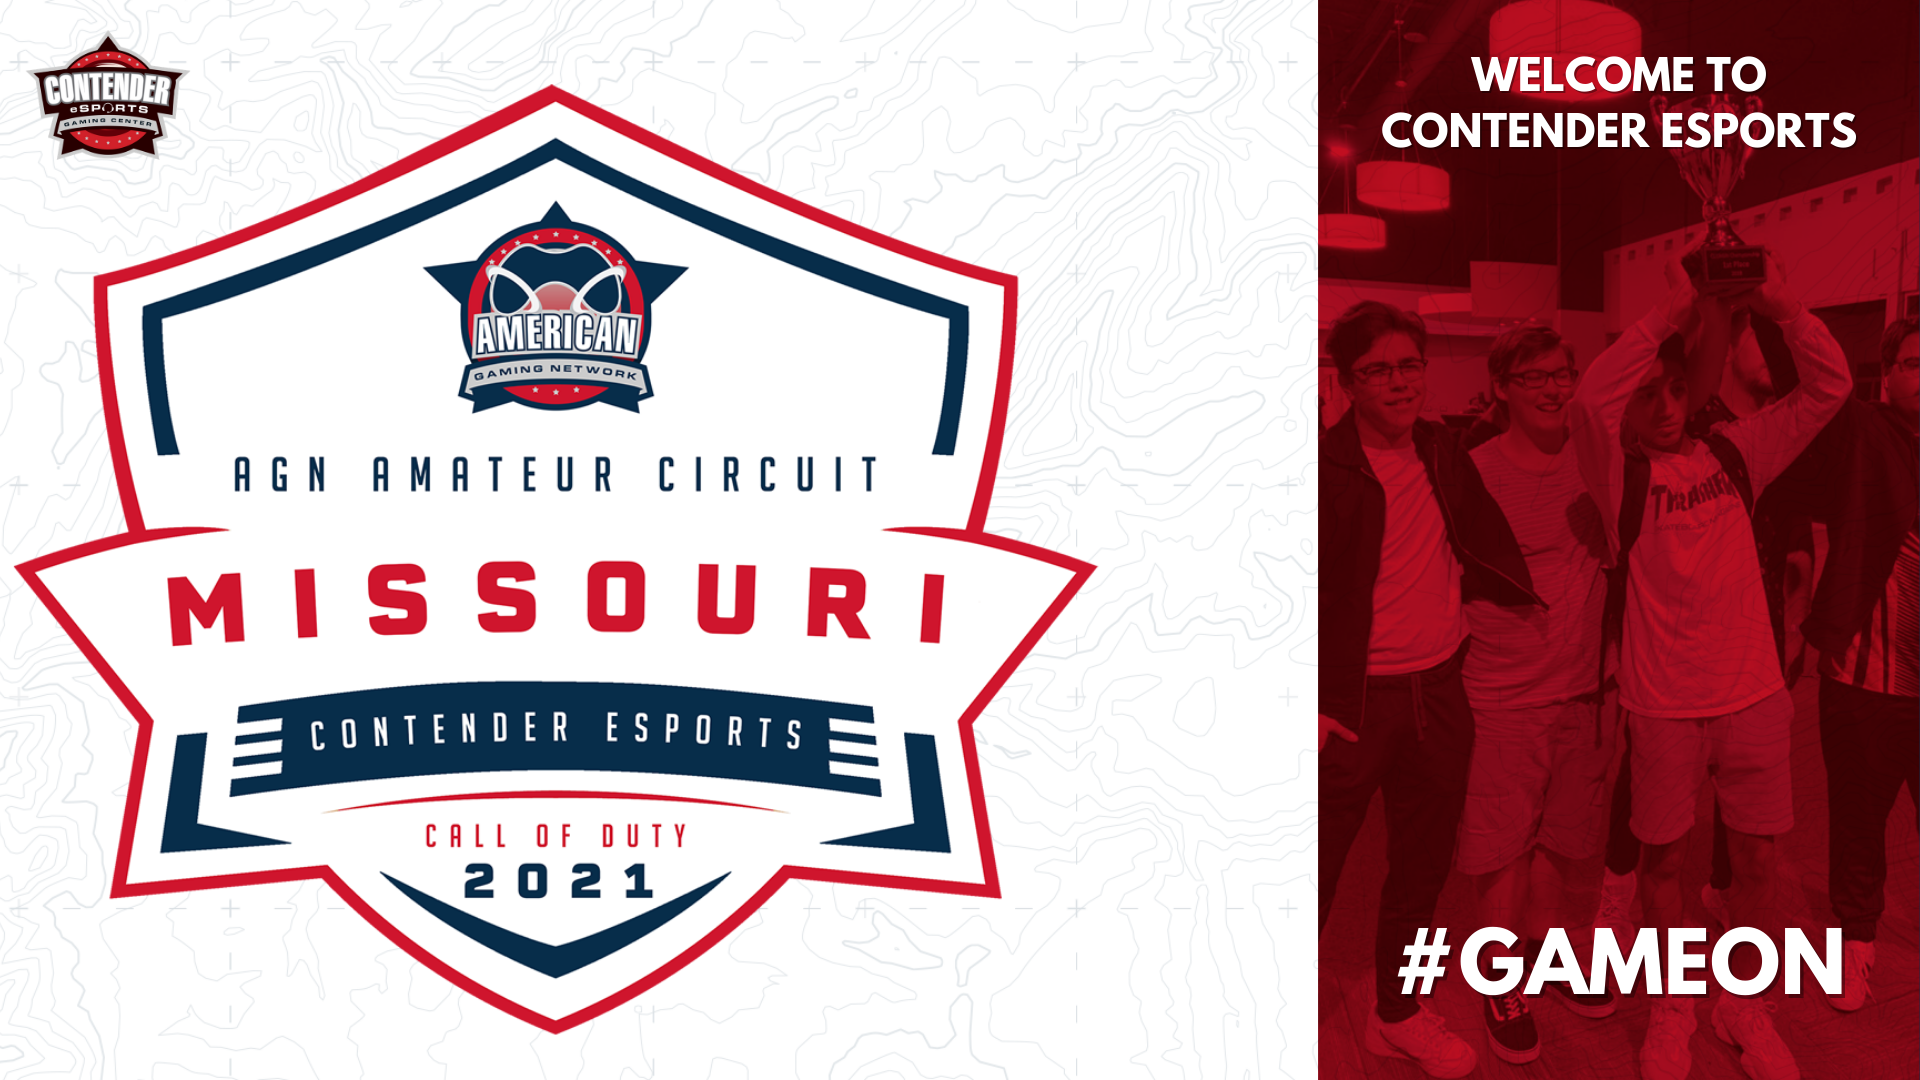 Springfield hosts one of the largest eSports events in the country